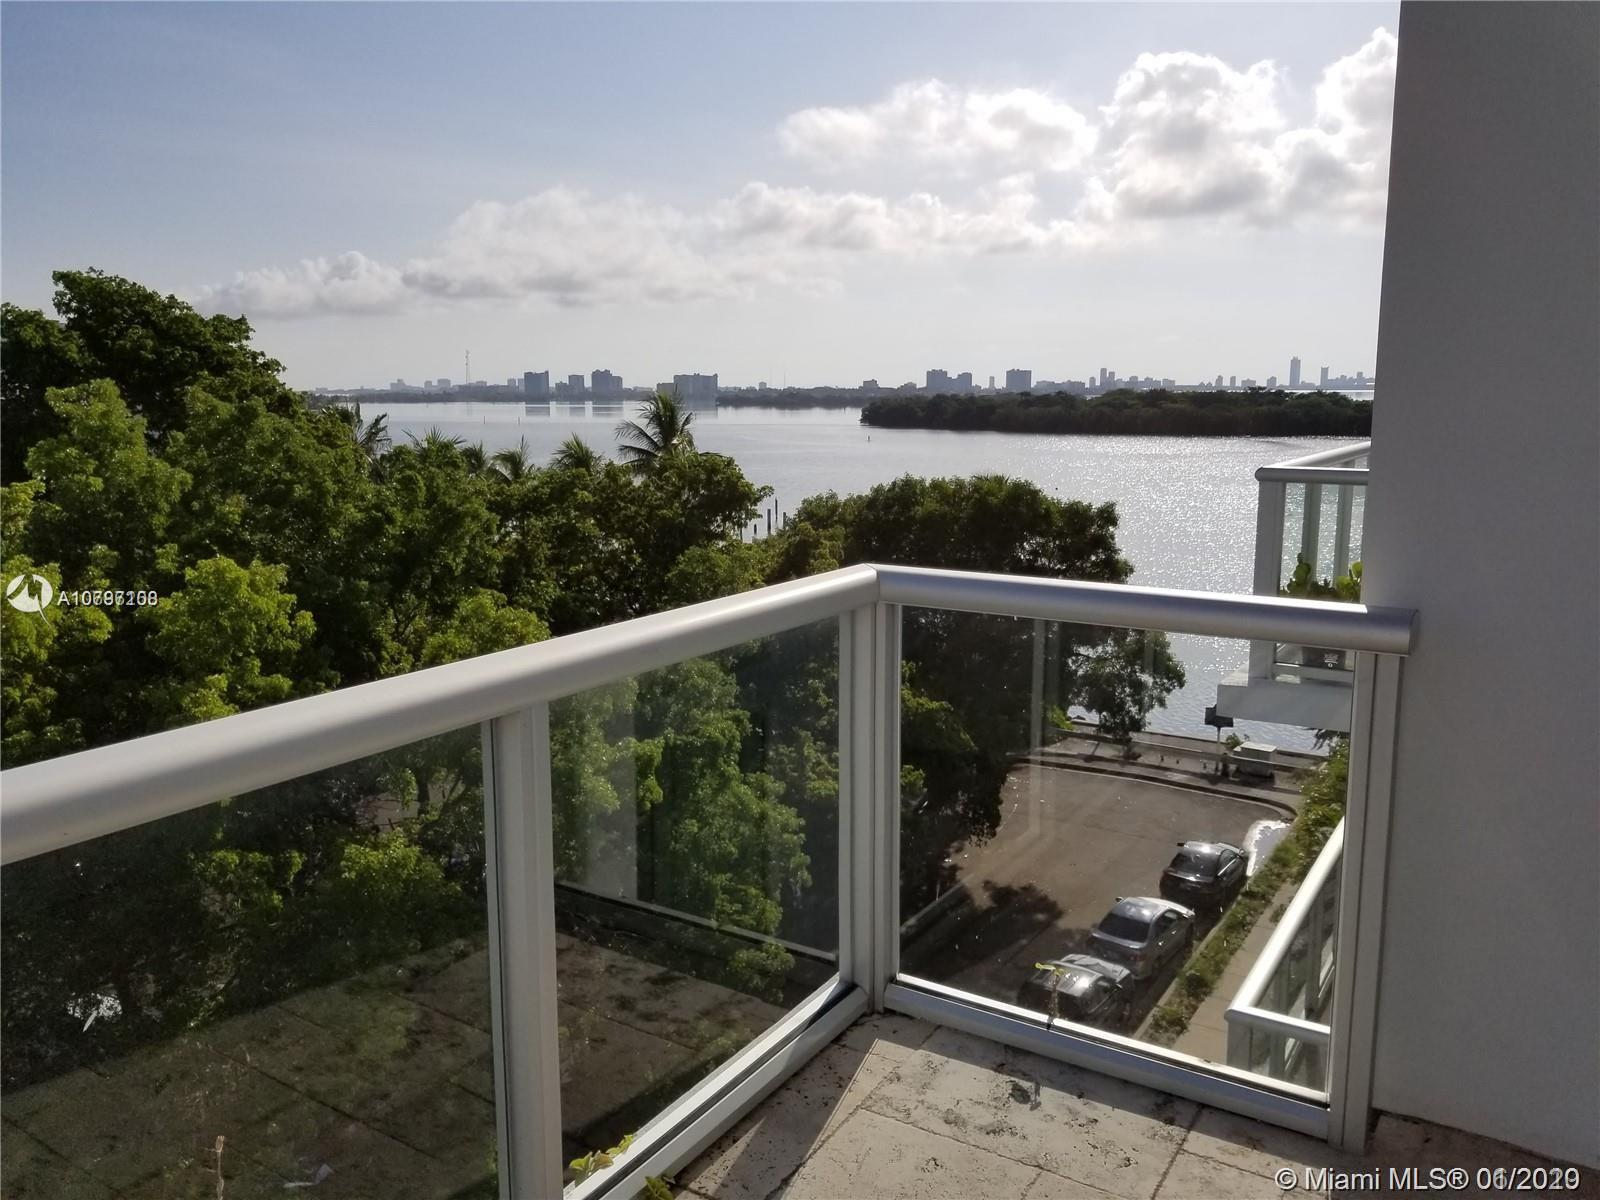 720 NE 62nd St # 503, Miami, Florida 33138, 2 Bedrooms Bedrooms, ,2 BathroomsBathrooms,Residential,For Sale,720 NE 62nd St # 503,A10797108